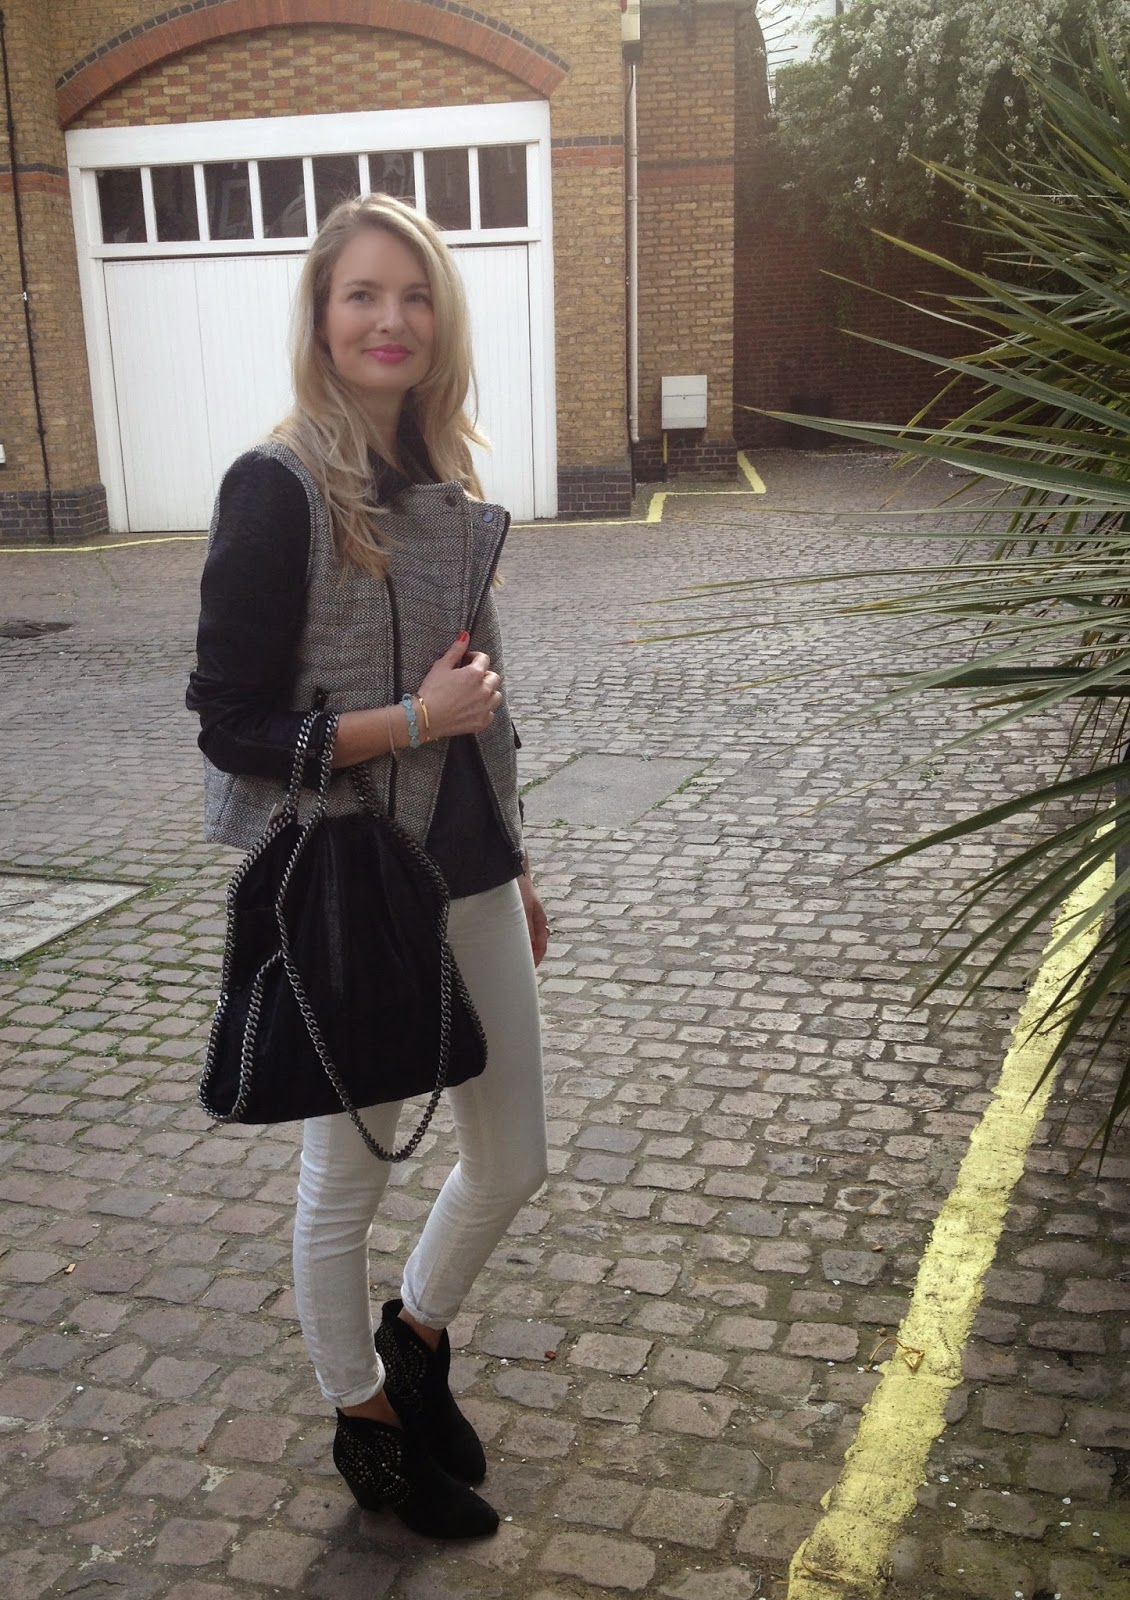 j brand, j brand jeans, white jeans, black and white look, mango jacket, mango biker jacket, tweed jacket, stella mccartney bag, stella mccartney falabella, ash boots, chrissabella